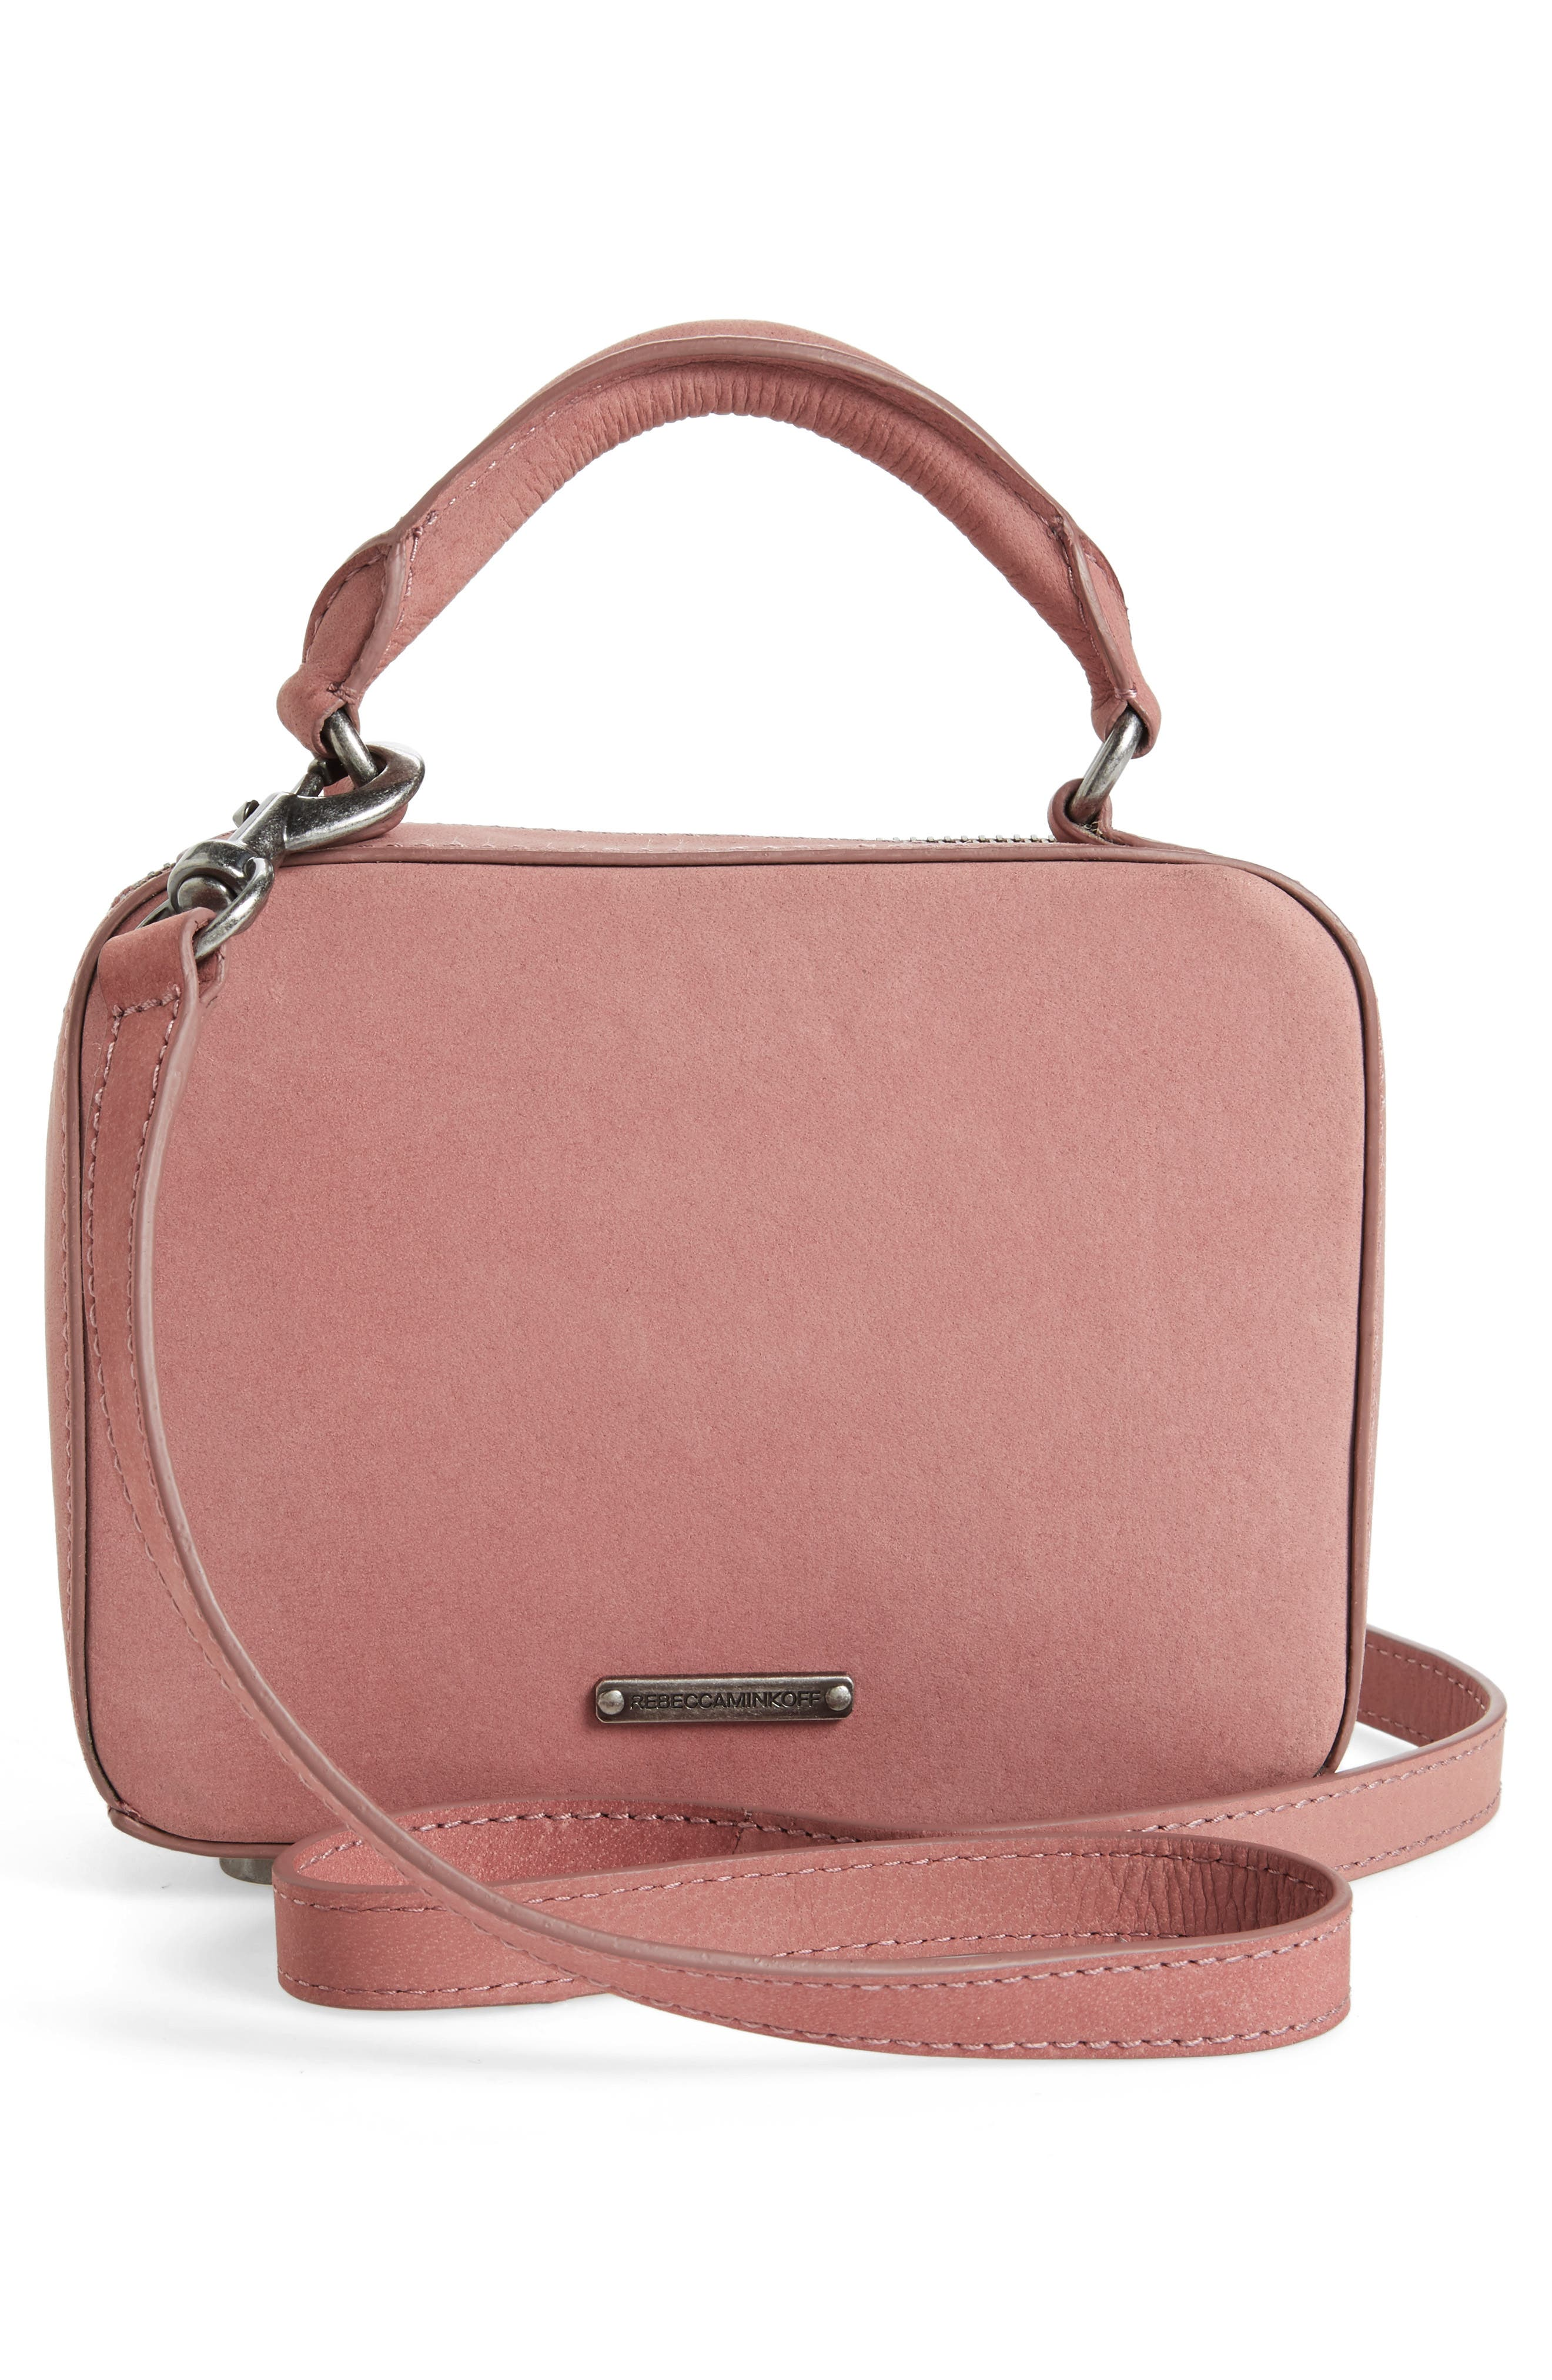 Alternate Image 3  - Rebecca Minkoff Embellished Box Leather Crossbody Bag